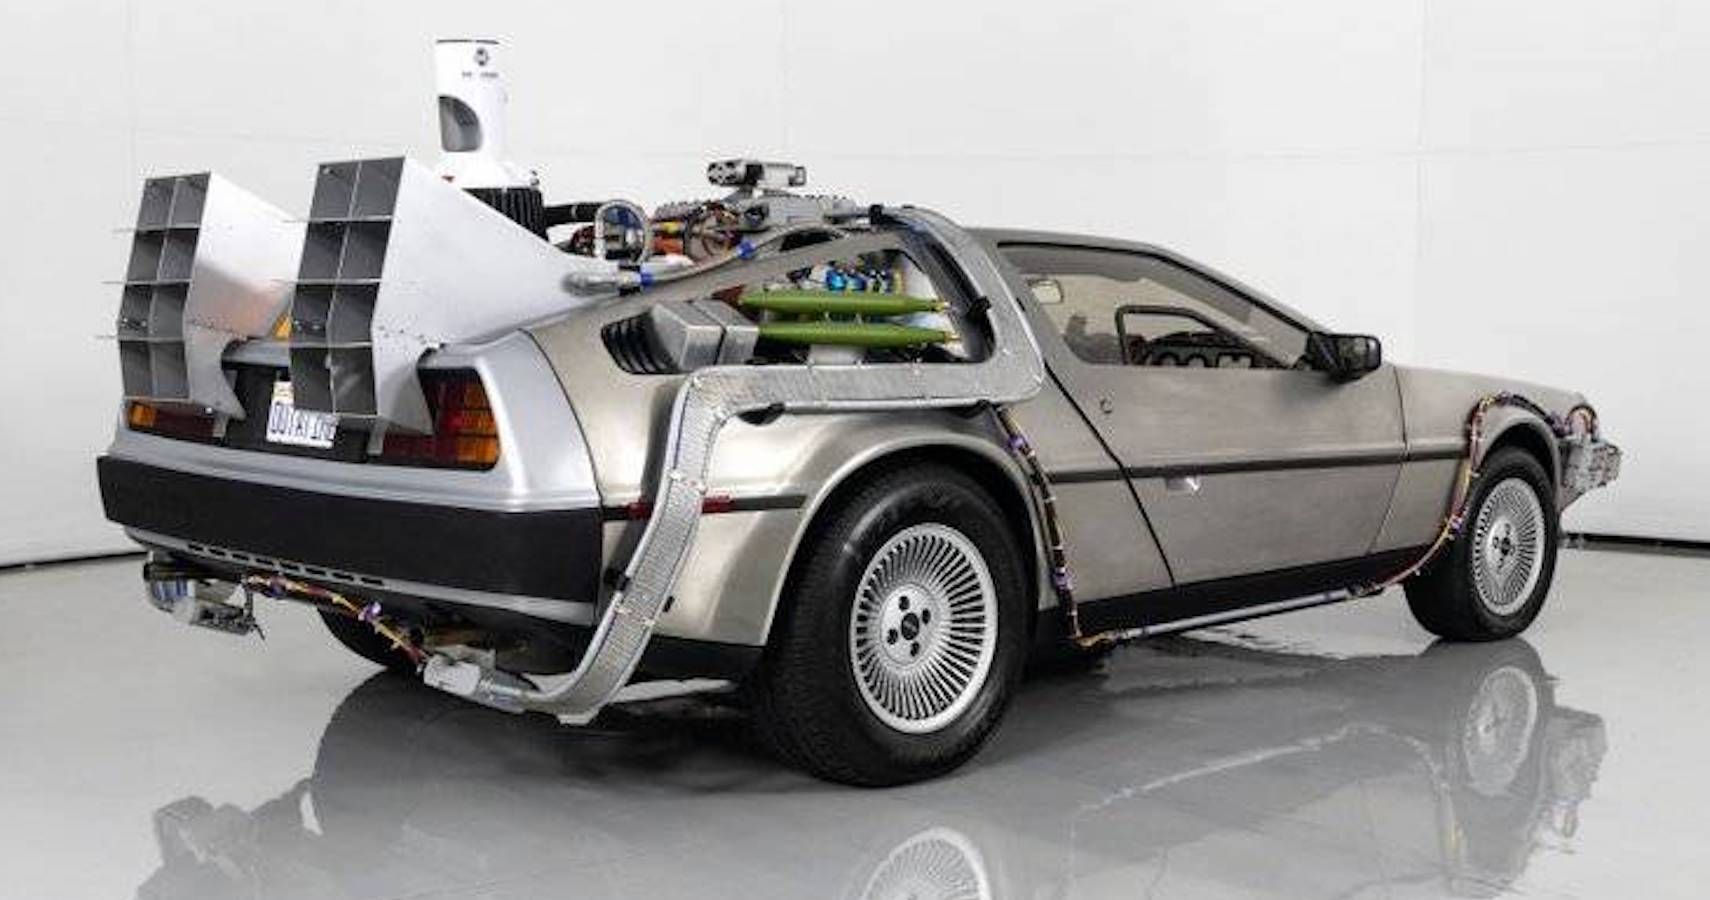 1981 DeLorean DMC-12 With Back To The Future Modifications On Hemmings